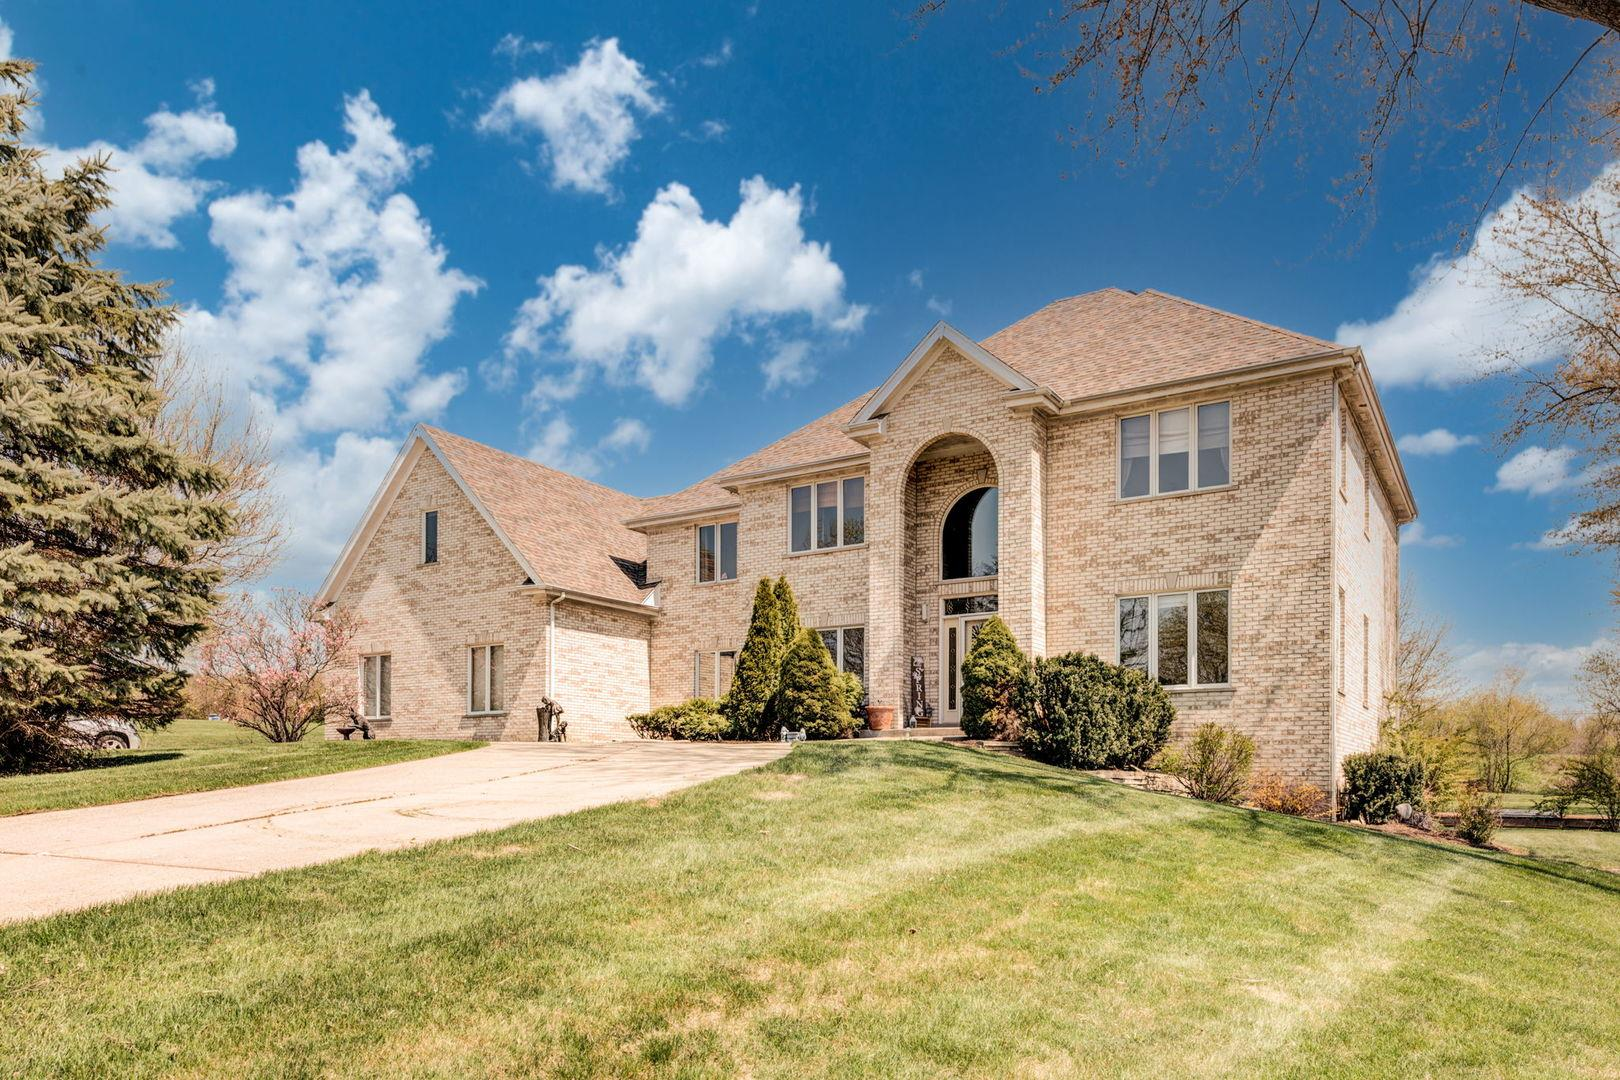 169 Sycamore Drive, Hawthorn Woods, IL 60047 - #: 11056373